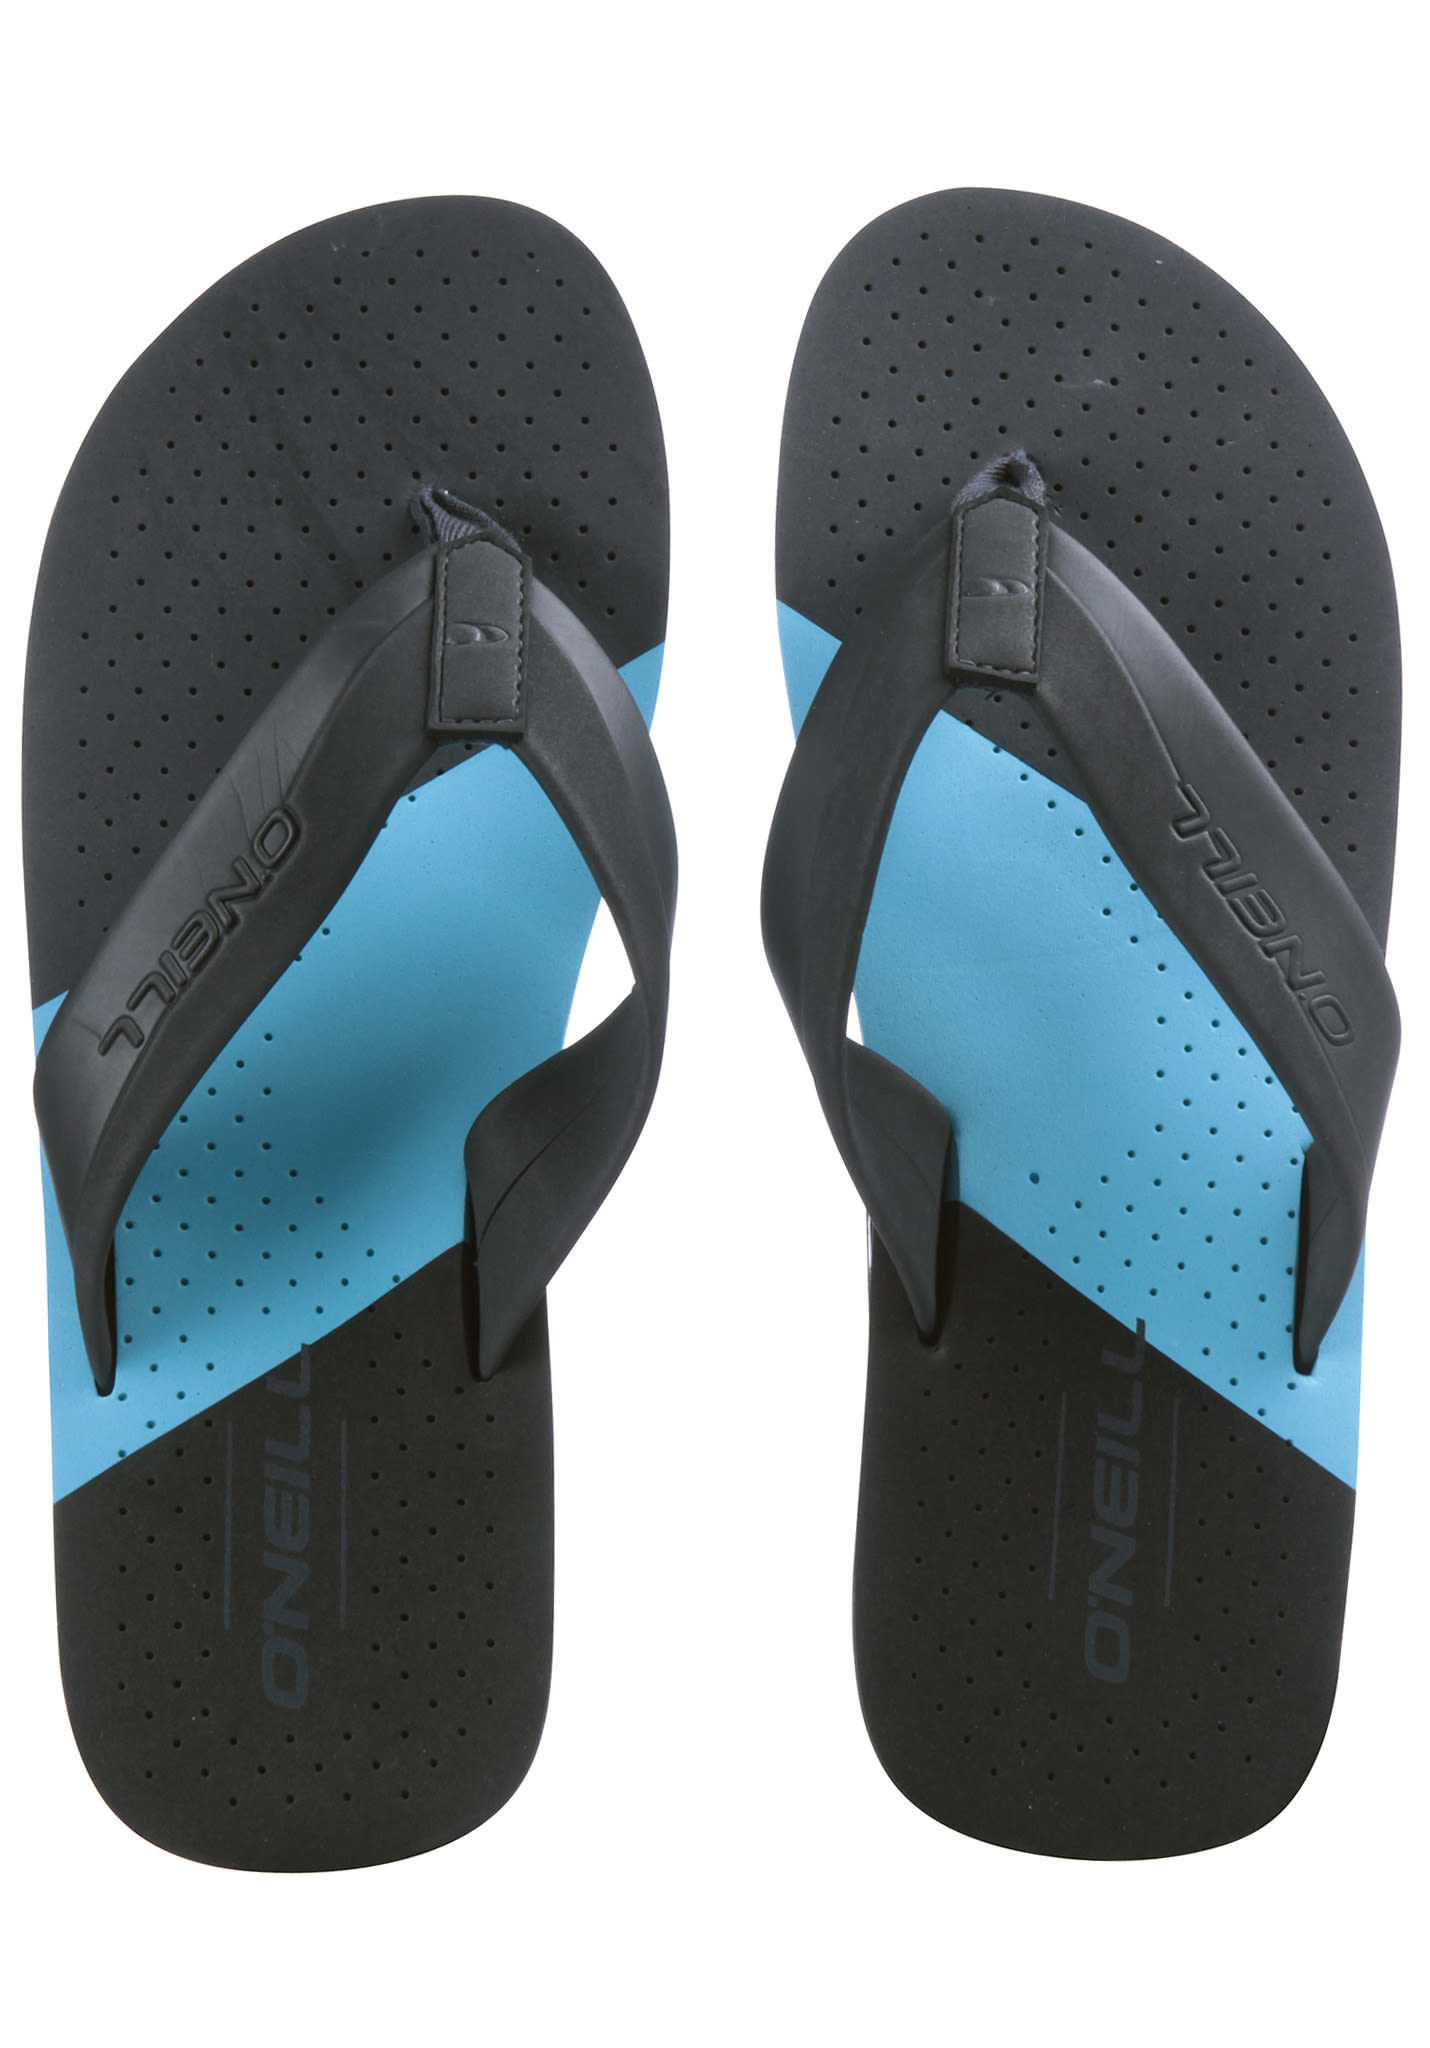 da9b2cc2e60de O Neill Imprint Punch - Sandals for Men - Blue - Planet Sports